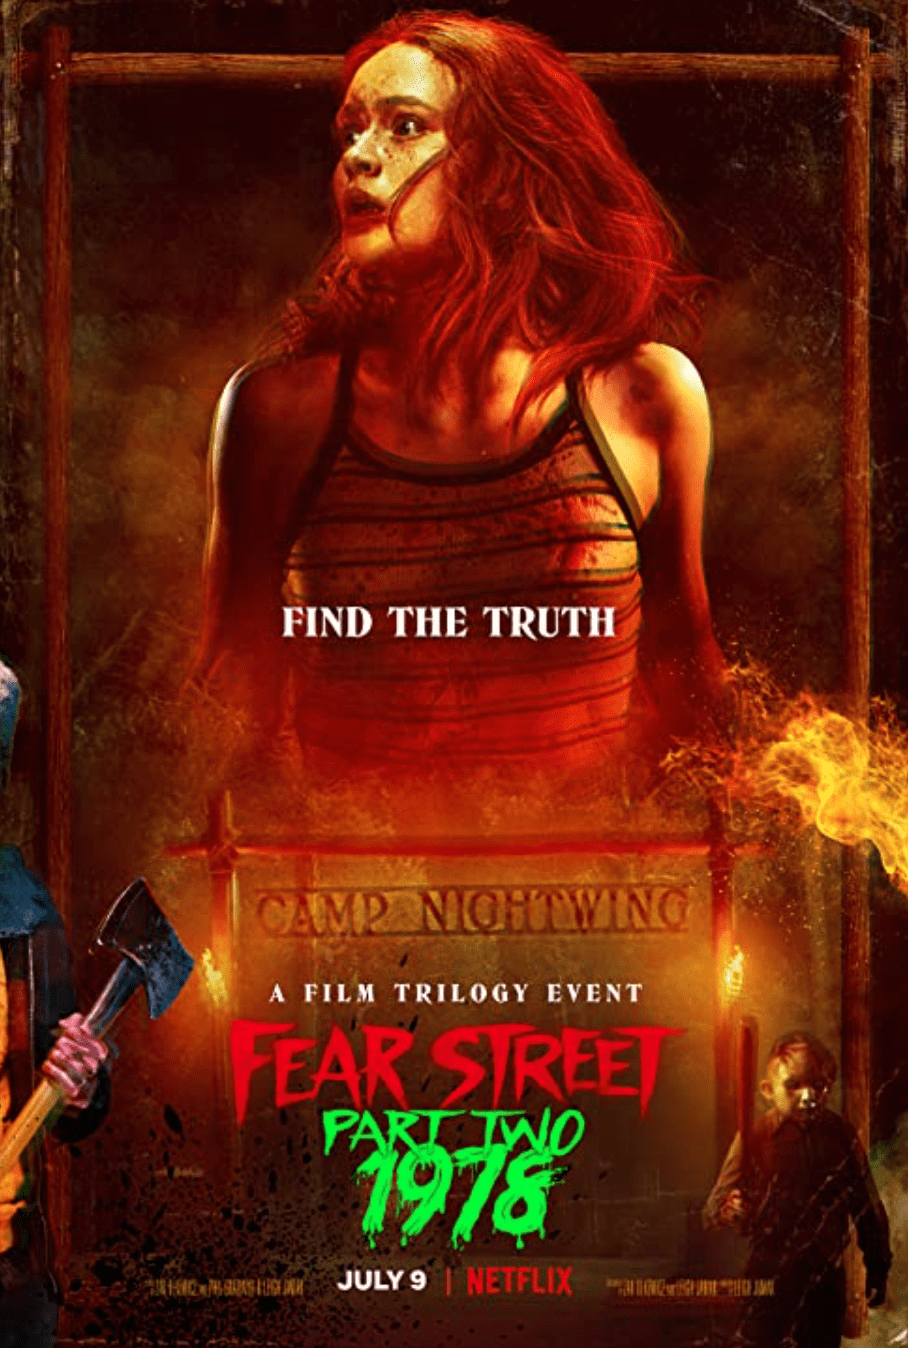 """The second installment of the """"Fear Street"""" trilogy, starring Sadie Sink, is a slasher film set at a summer camp in 1978 called """"Camp Nightwing,"""" a clear homage to """"Friday the 13th."""" The obvious evocation of a horror classic, along with eerie similarities to """"Stranger Things"""" show how the trilogy took inspiration from earlier works. Photo Courtesy of Netflix"""